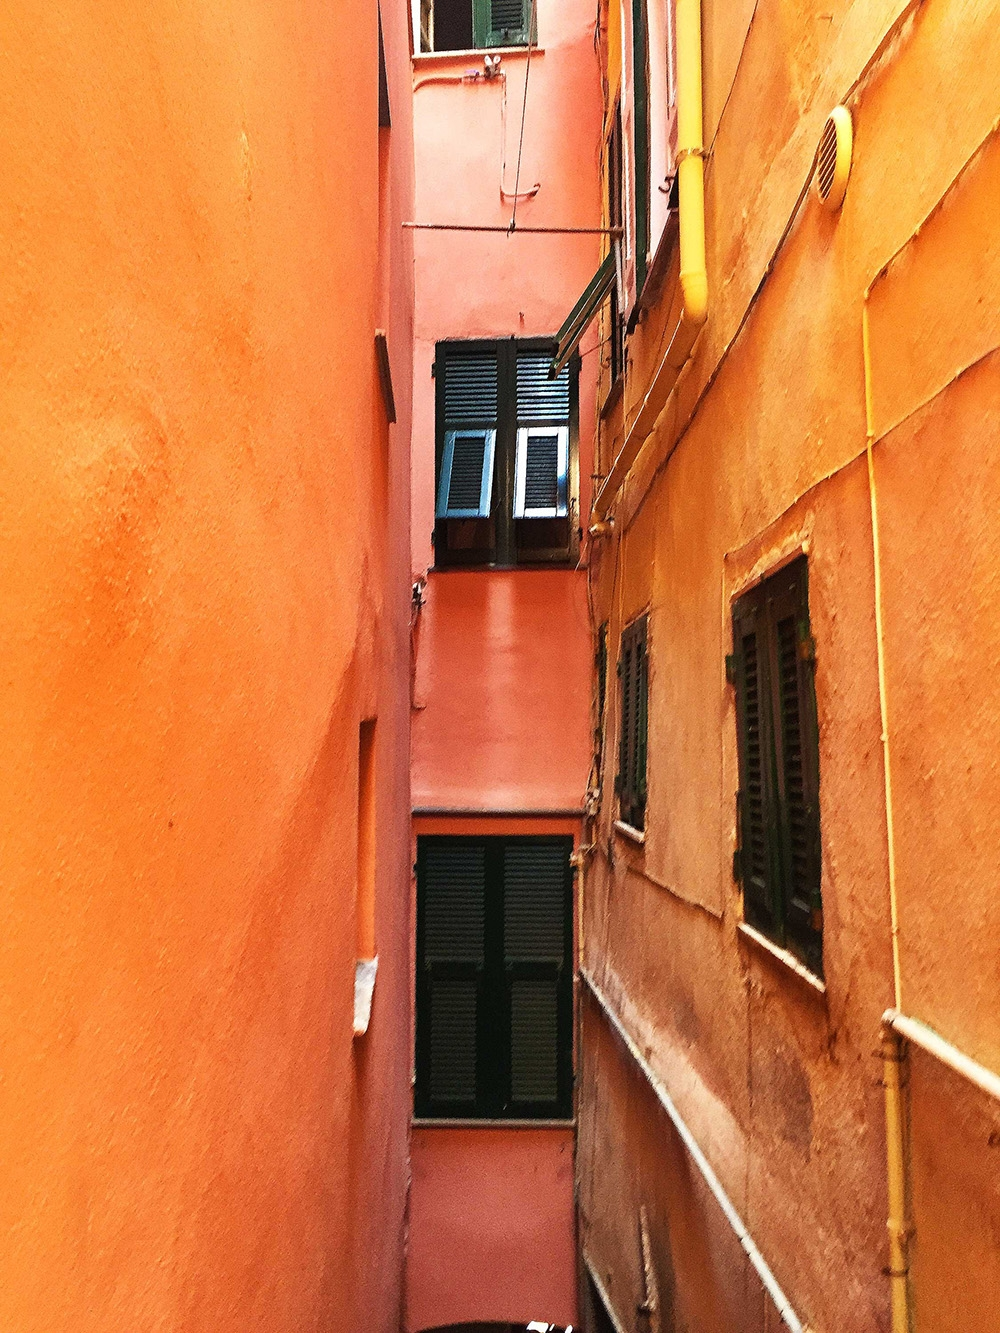 The vibrant orange buildings of Vernazza